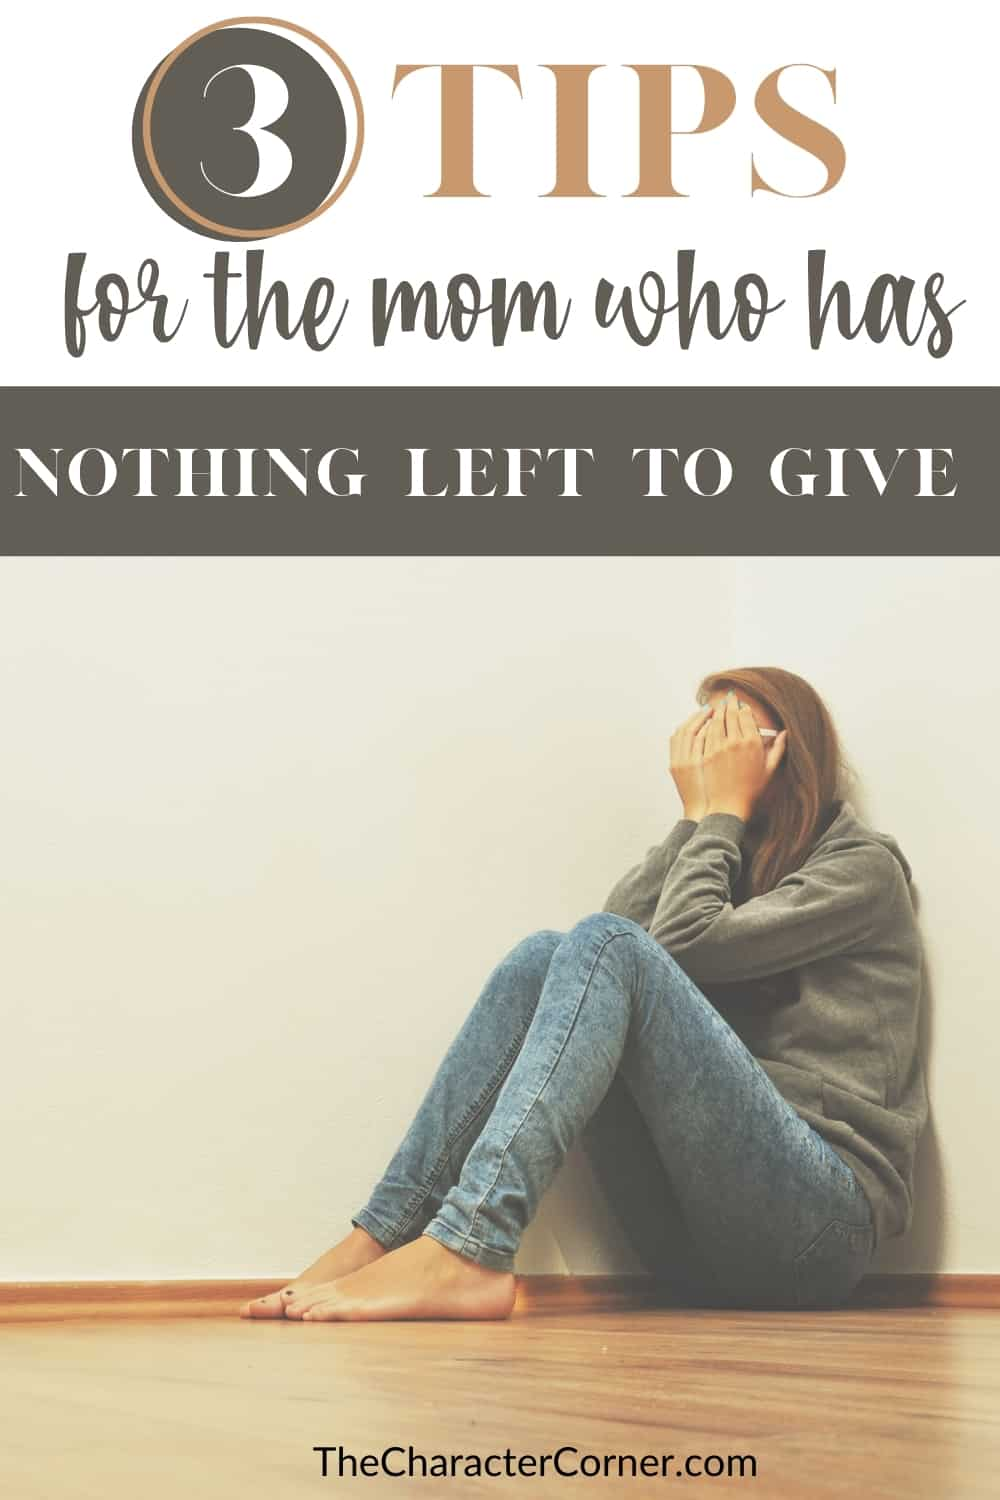 Stressed mom on the floor covering face with hands text on image reads 3 Tips For The Mom Who Has Nothing Left To Give